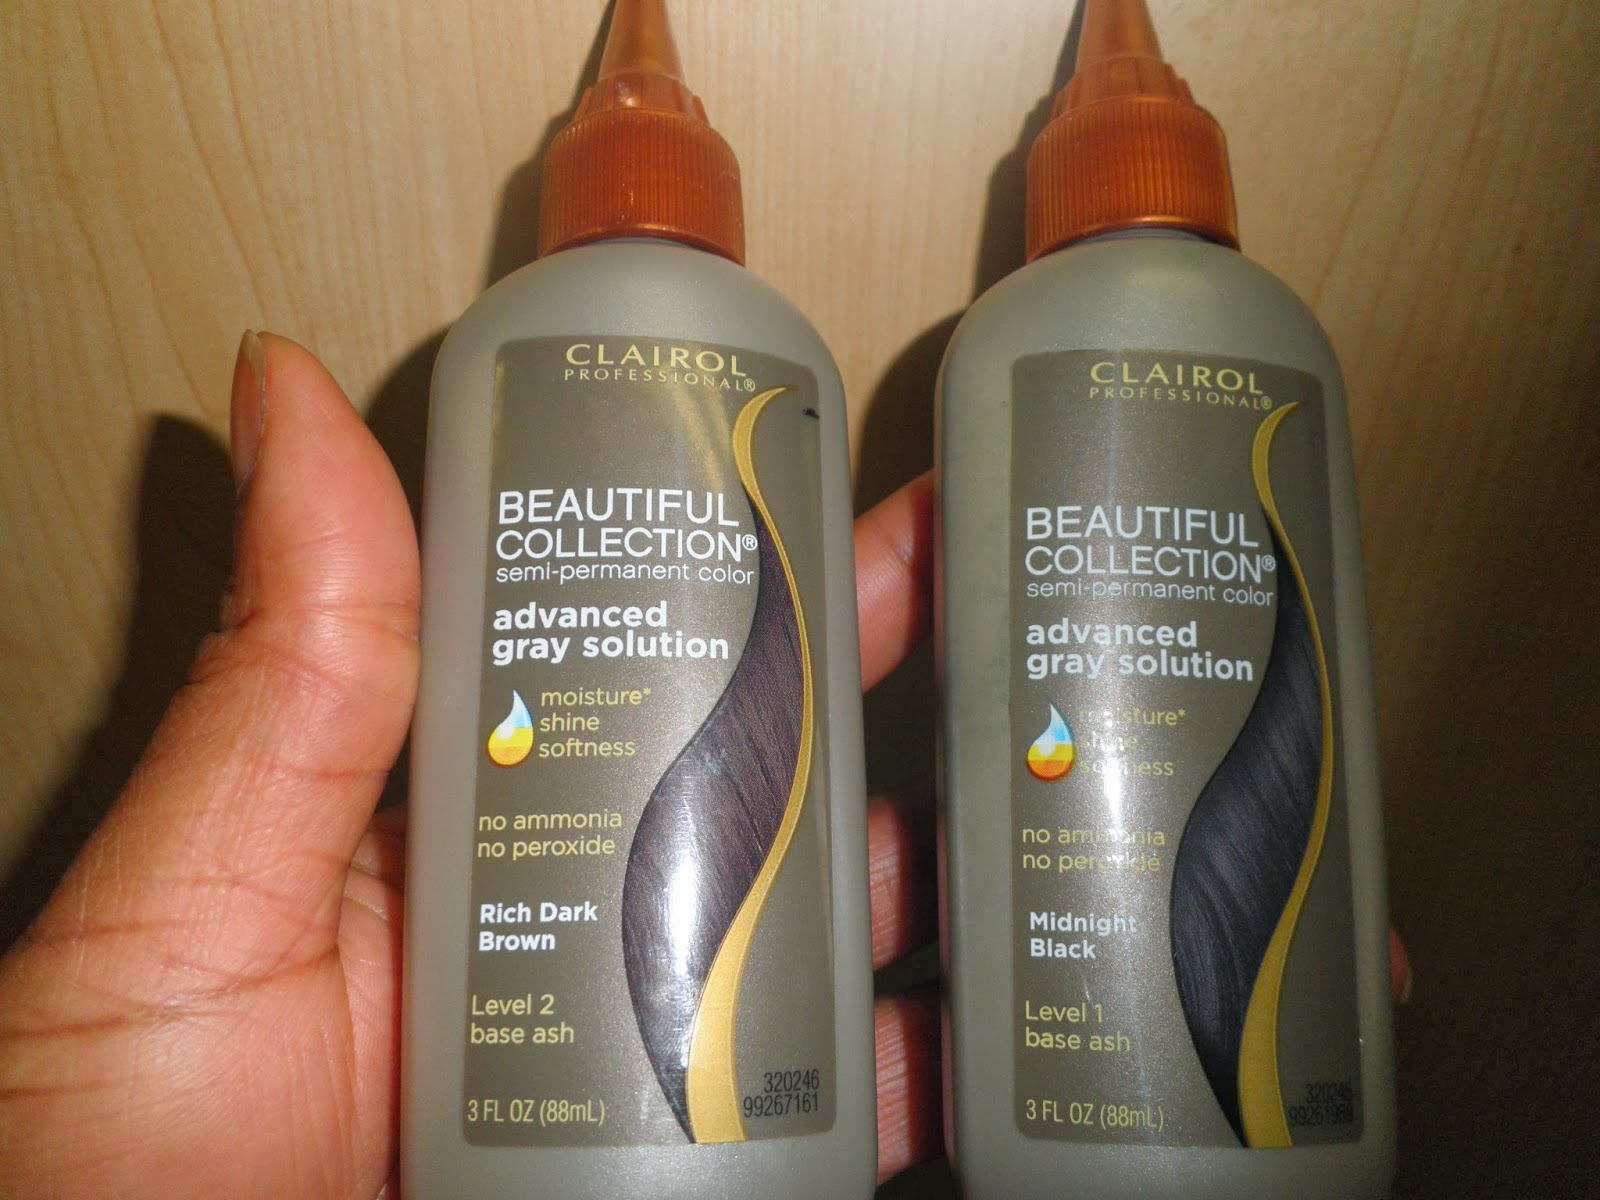 Clairol S Beautiful Collection Advanced Gray Solution Delivers Results That Vary From Individual To Resistant Hair May Require Heat